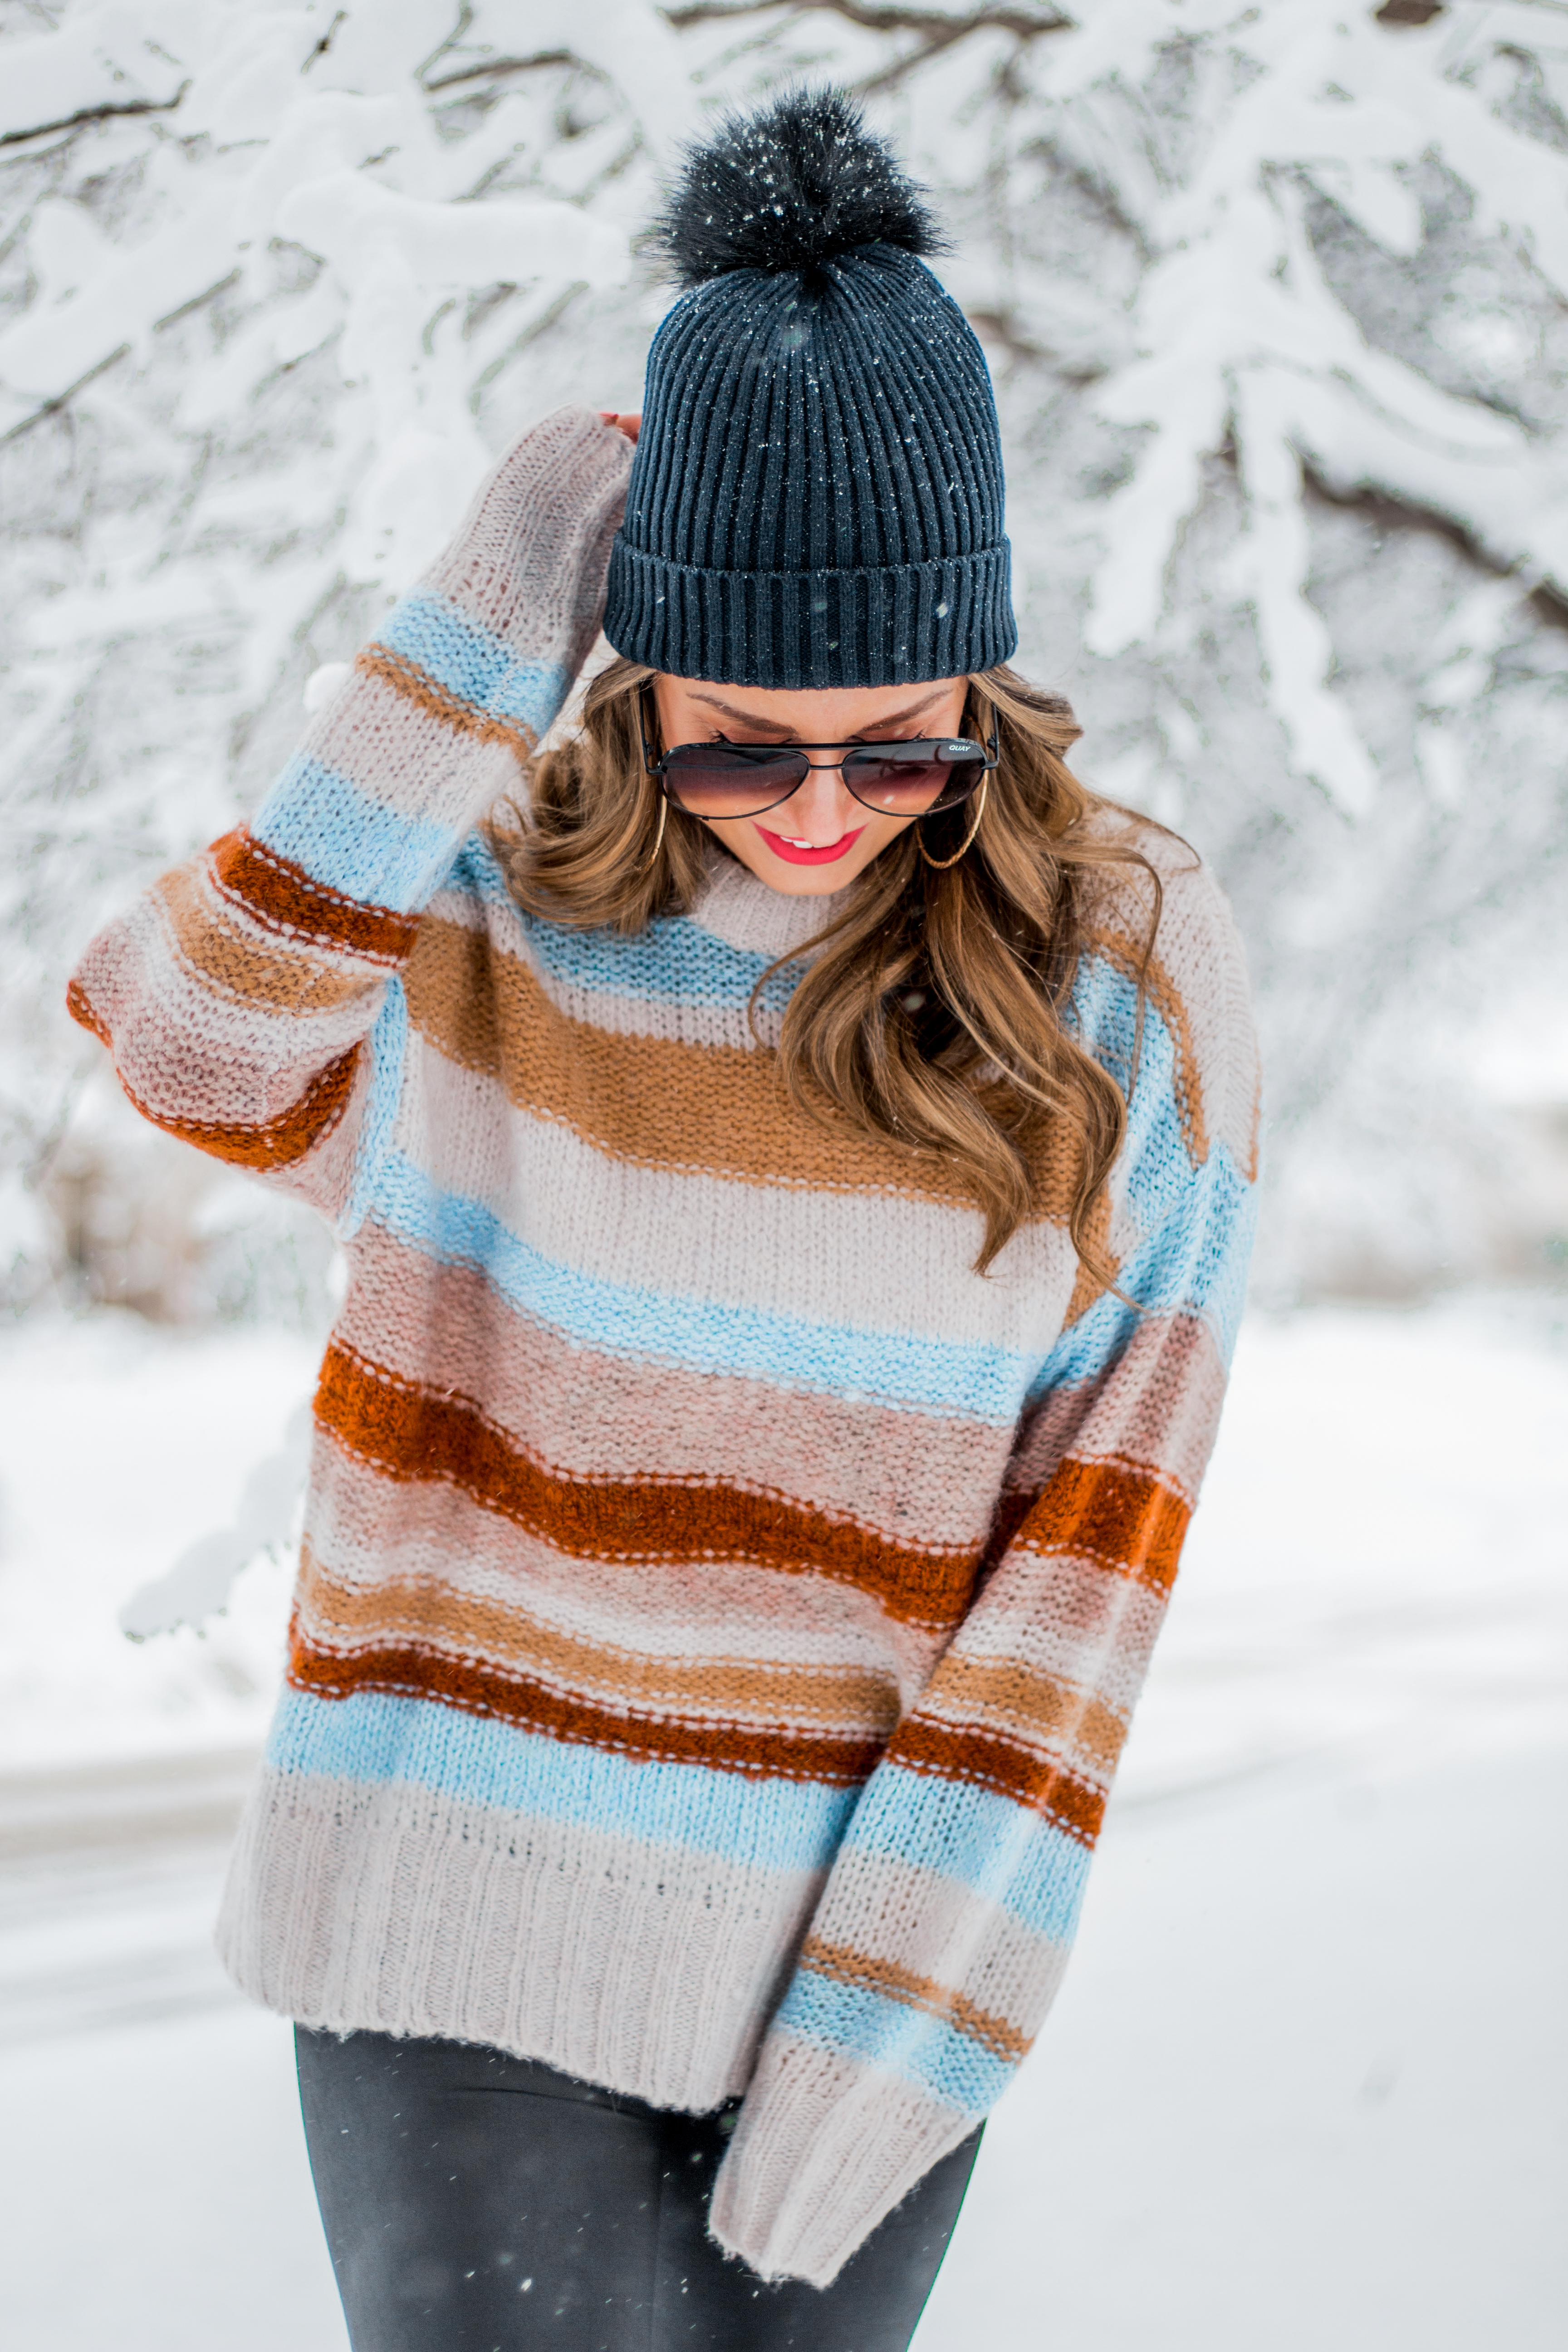 Women's Fashion - American Eagle Sweater - Hunter Boots - Beanie - Snow Day - OOTD - Fashion Blogger - Winter Fashion - 9